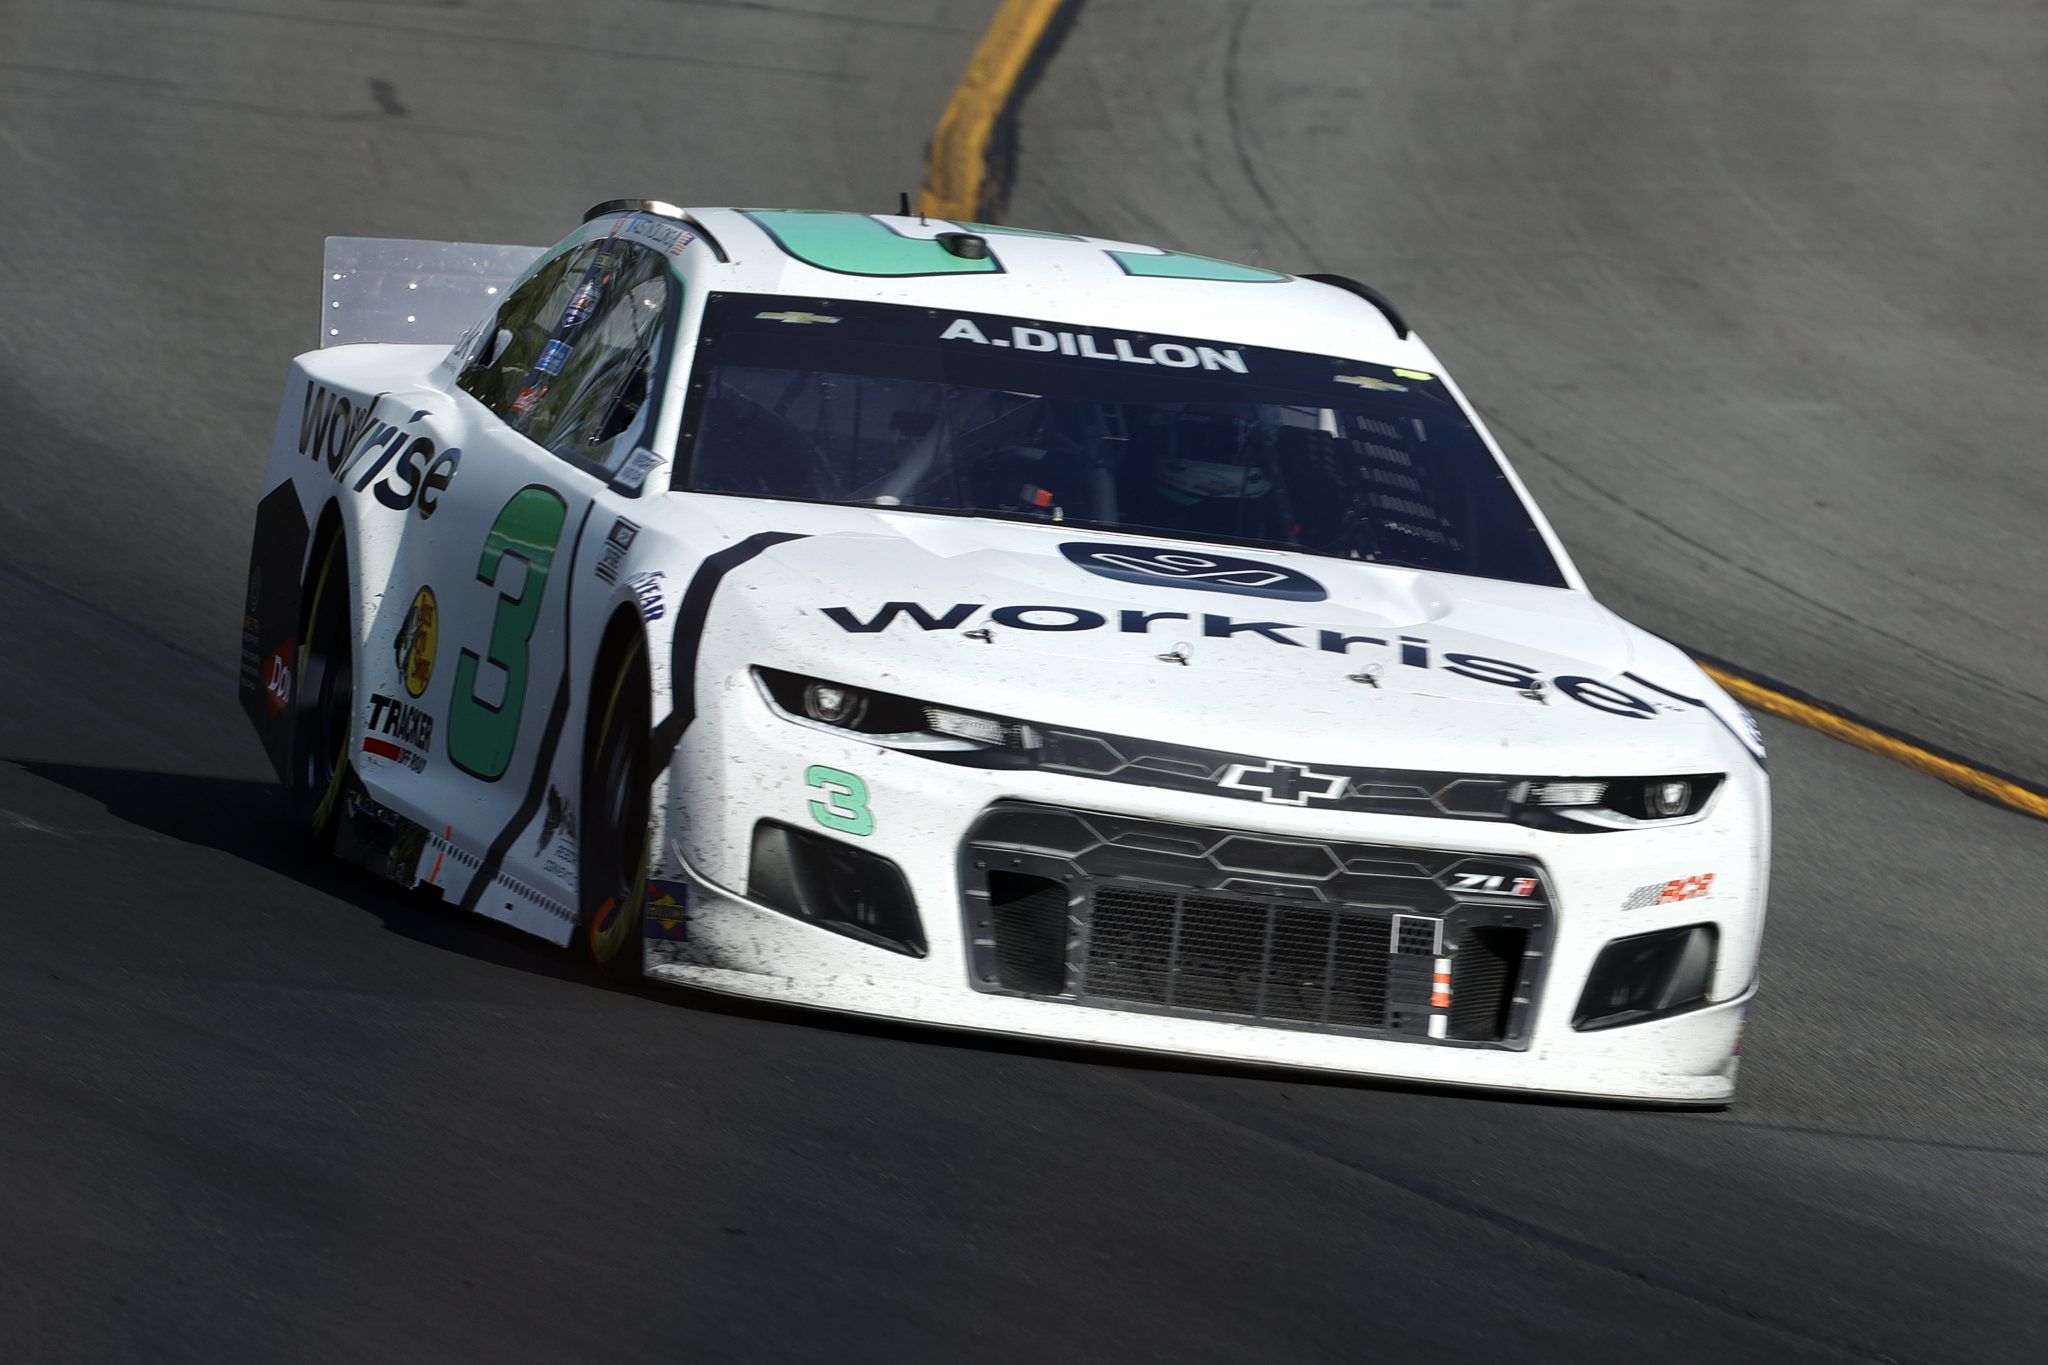 LONG POND, PENNSYLVANIA - JUNE 27: Austin Dillon, driver of the #3 Workrise Chevrolet, drives during the NASCAR Cup Series Explore the Pocono Mountains 350 at Pocono Raceway on June 27, 2021 in Long Pond, Pennsylvania. (Photo by Tim Nwachukwu/Getty Images) | Getty Images